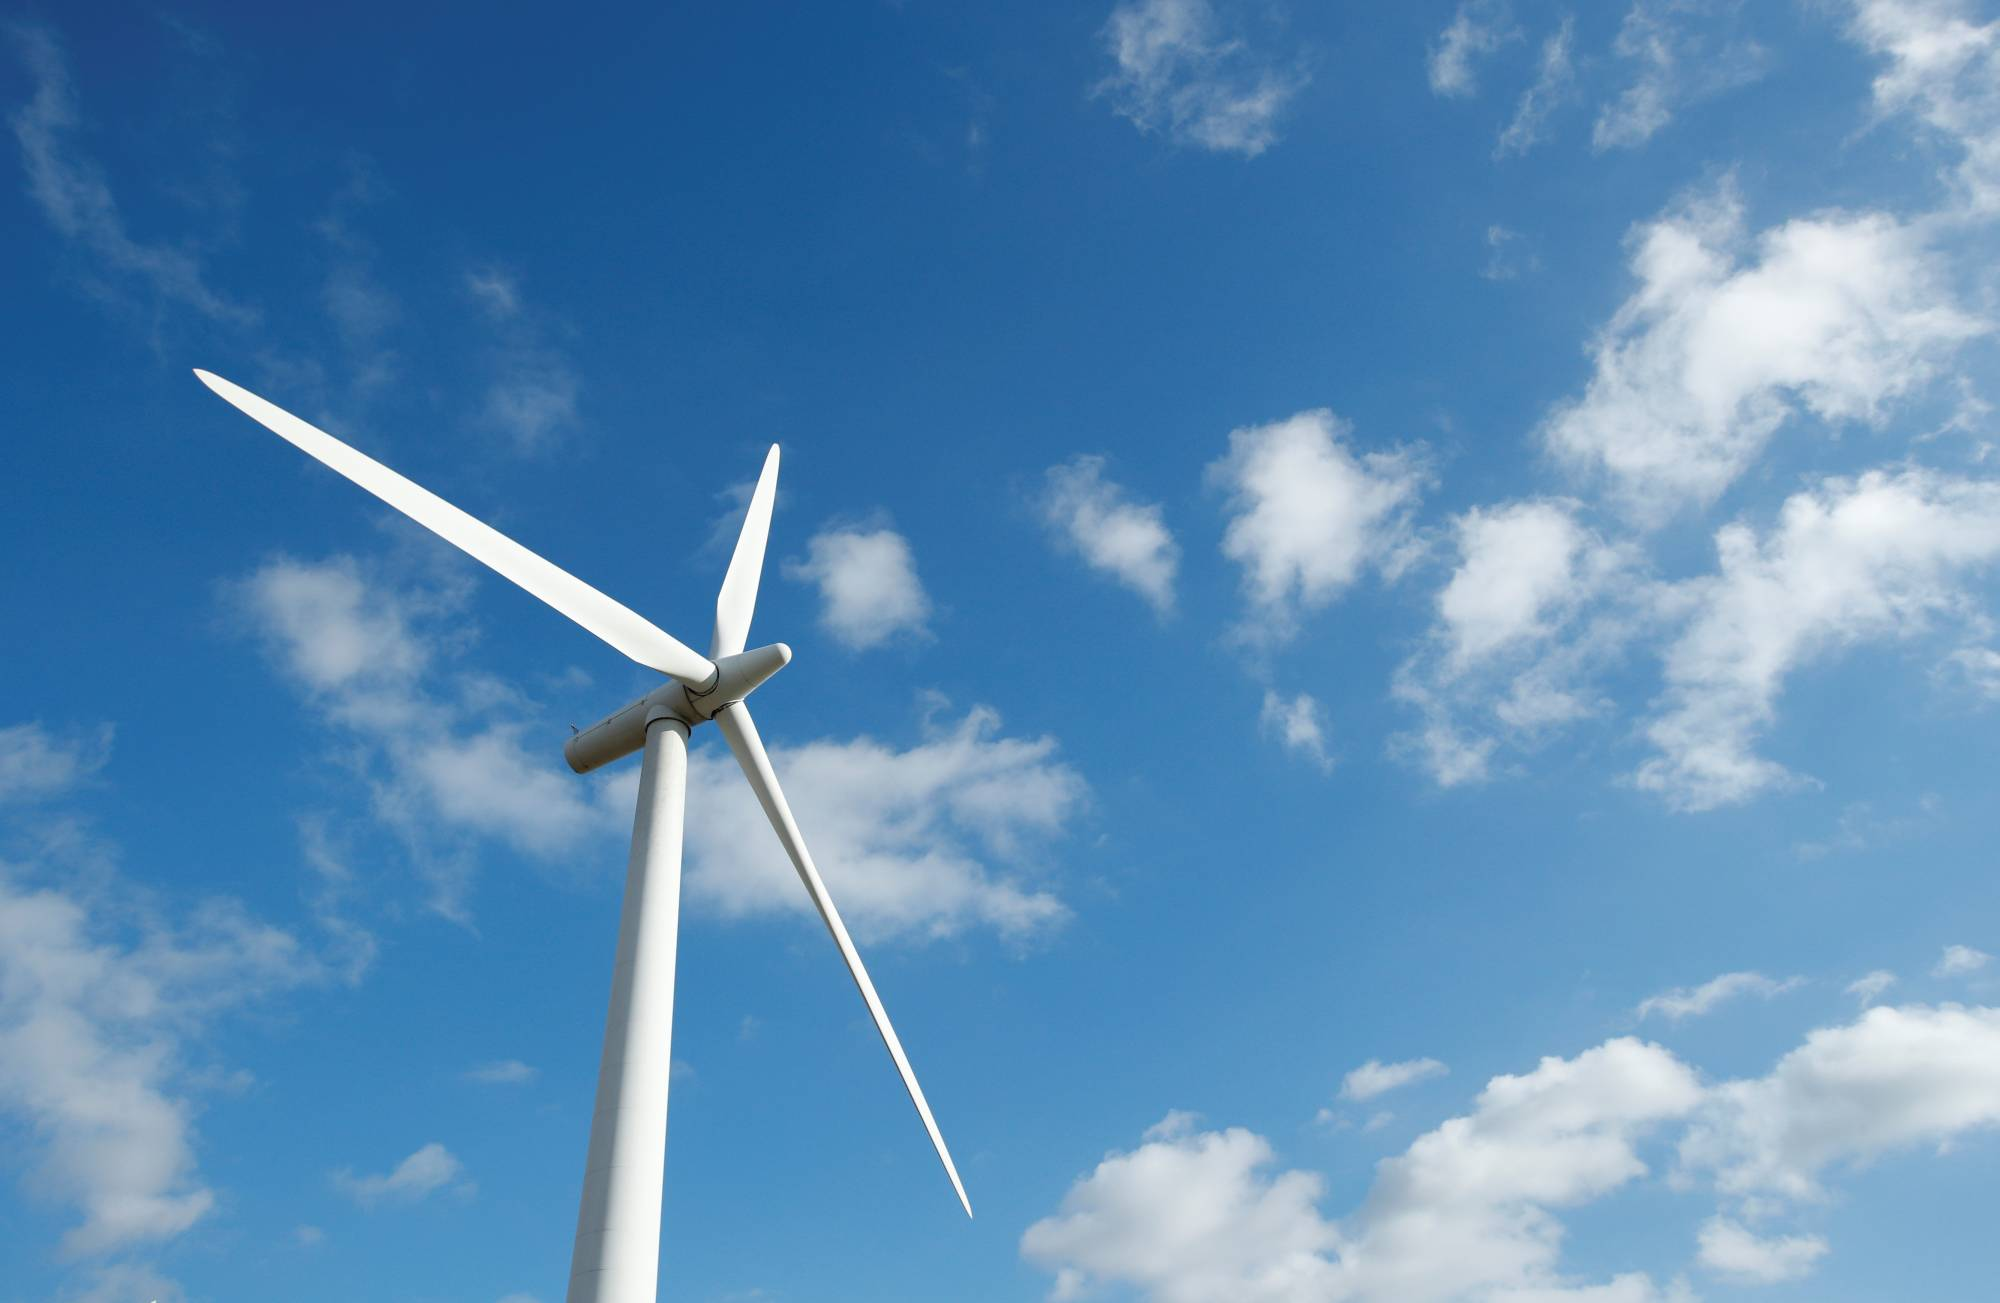 Scottish utility SSE plc will pay $208 million (¥23 billion) to take an 80% stake in a joint venture with Pacifico Energy to build offshore wind farms in Japan. | REUTERS